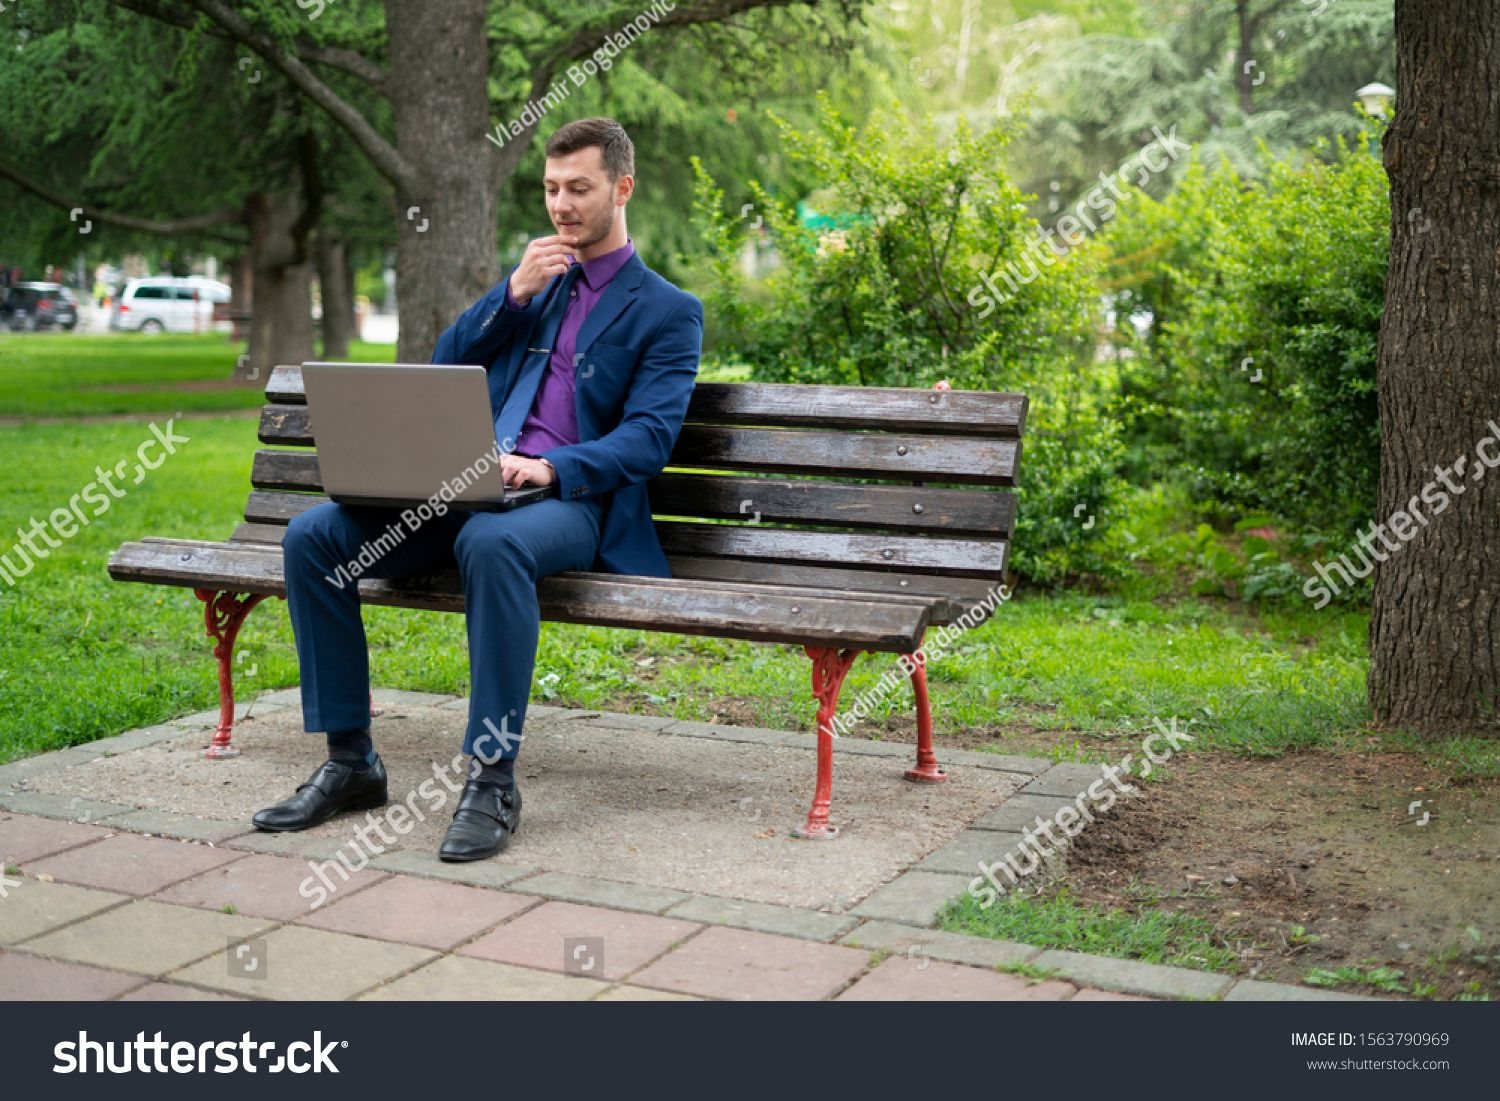 Young Businessman In Blue Suit Is Sitting On Park S Bench And Working On His Lap Top He Si Making An Important Business Deci Blue Suit Business Man Park Bench